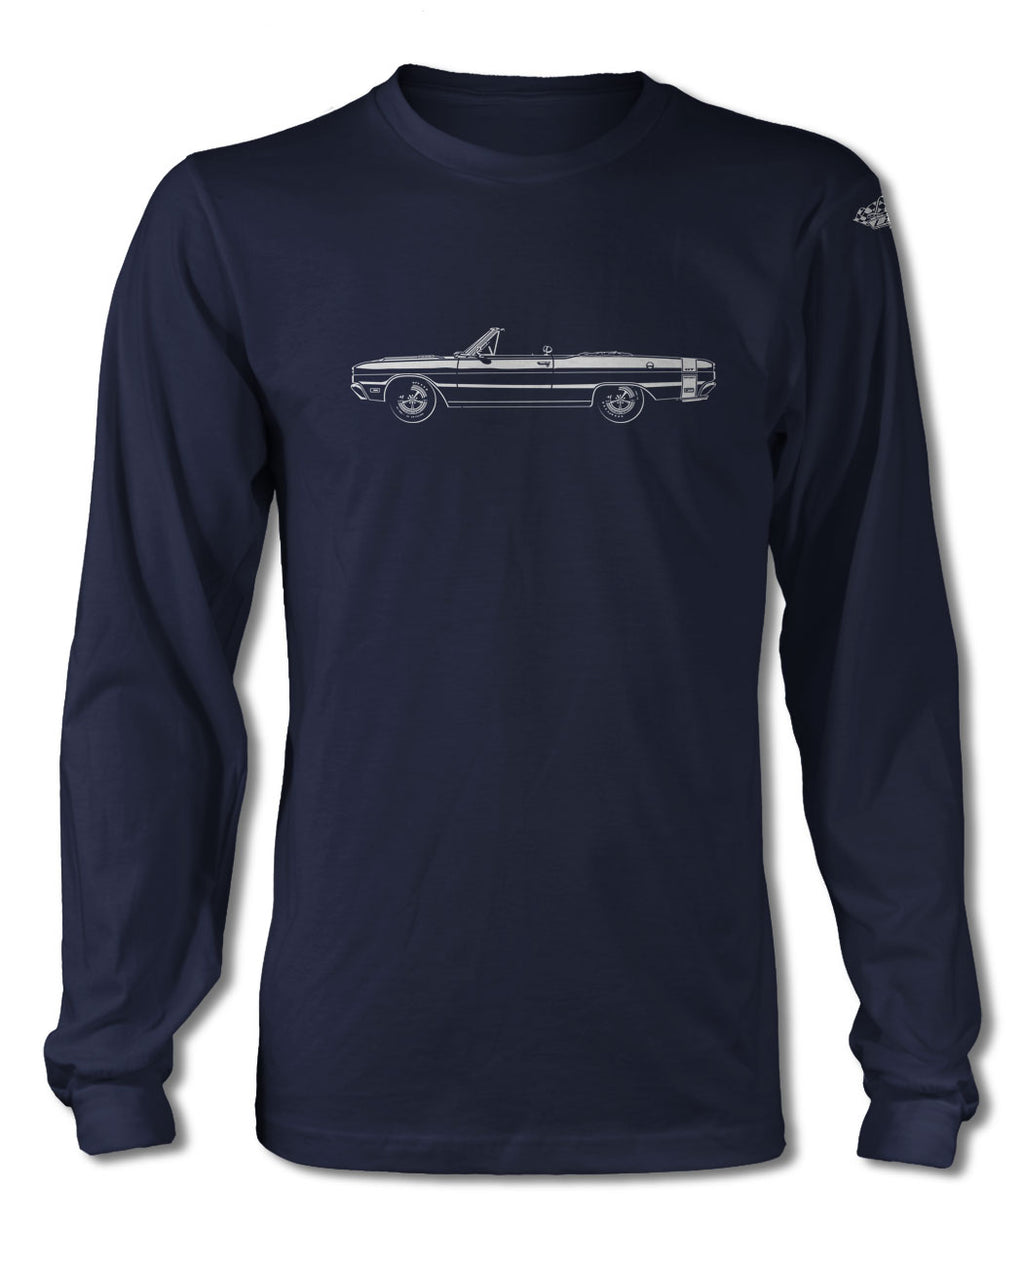 1969 Dodge Dart GTS Convertible T-Shirt - Long Sleeves - Side View